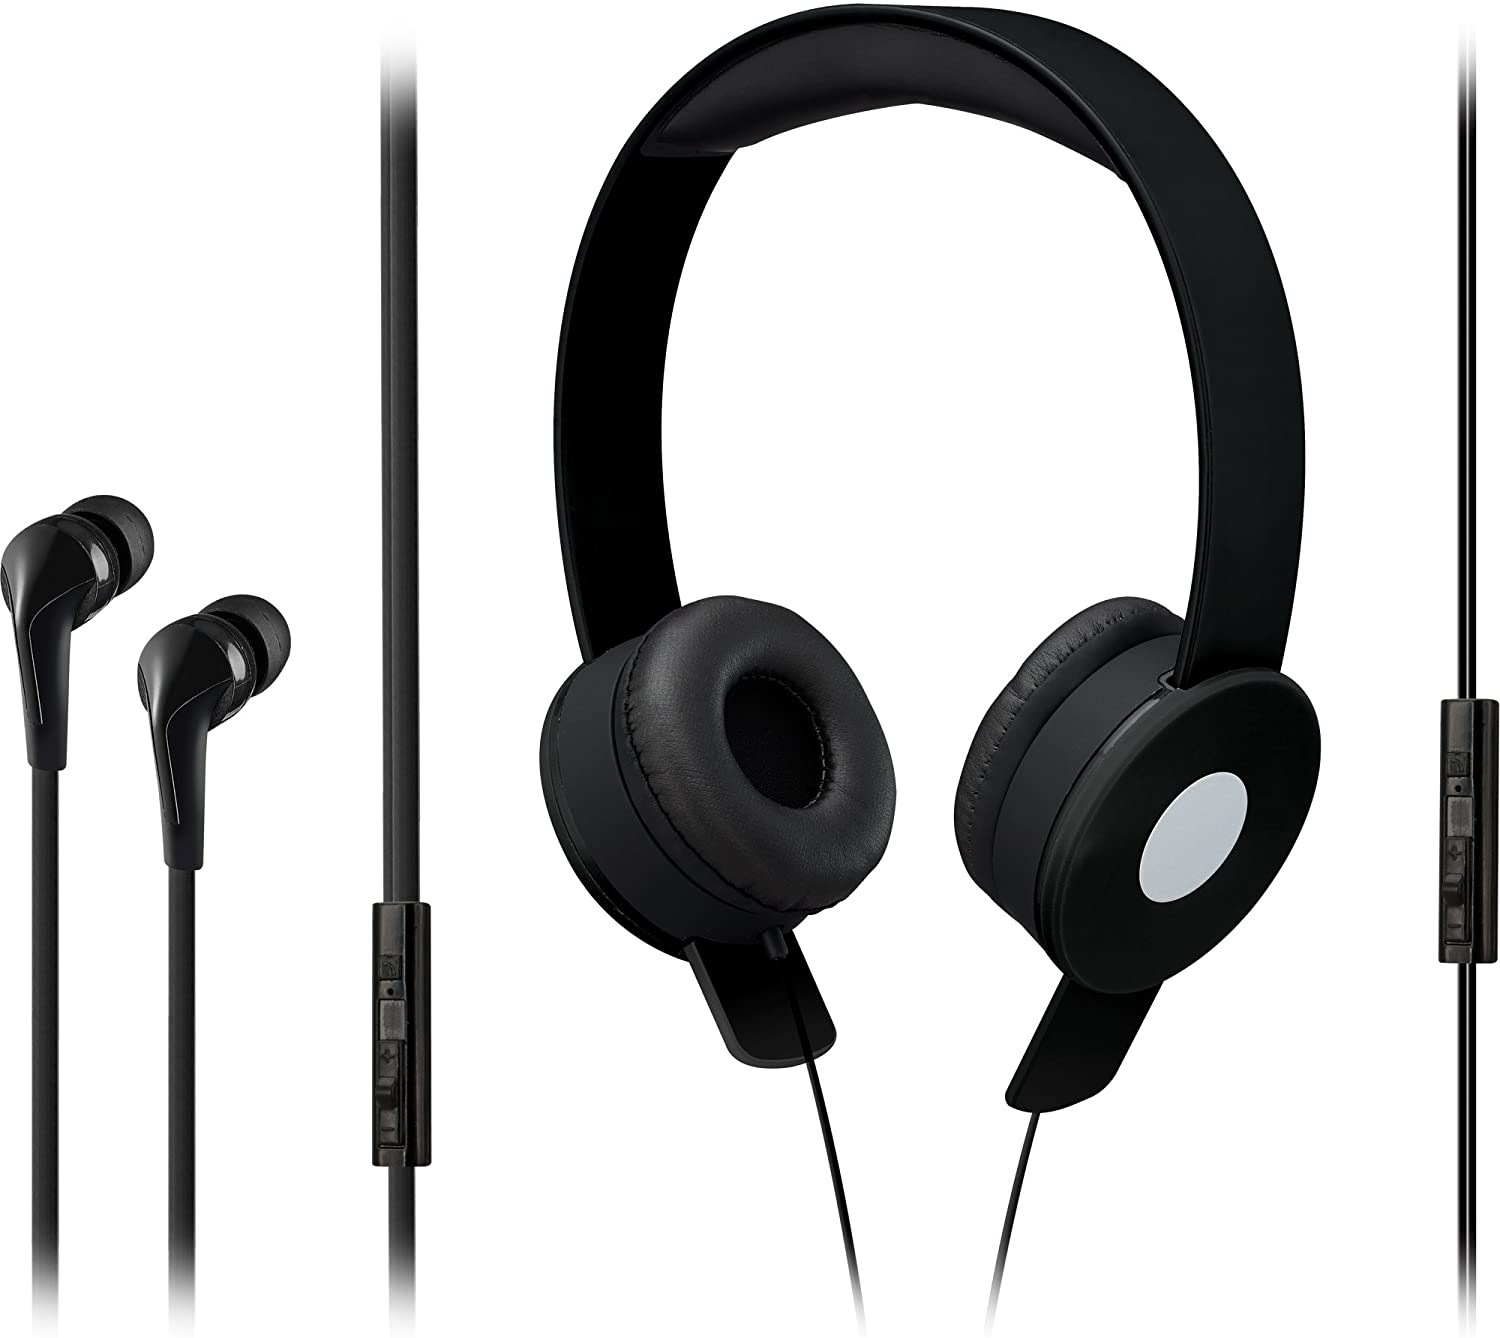 iLive iAHV65BDLB On-Ear Twistable Headphone and Earbud Combo Pack, with Microphone Black